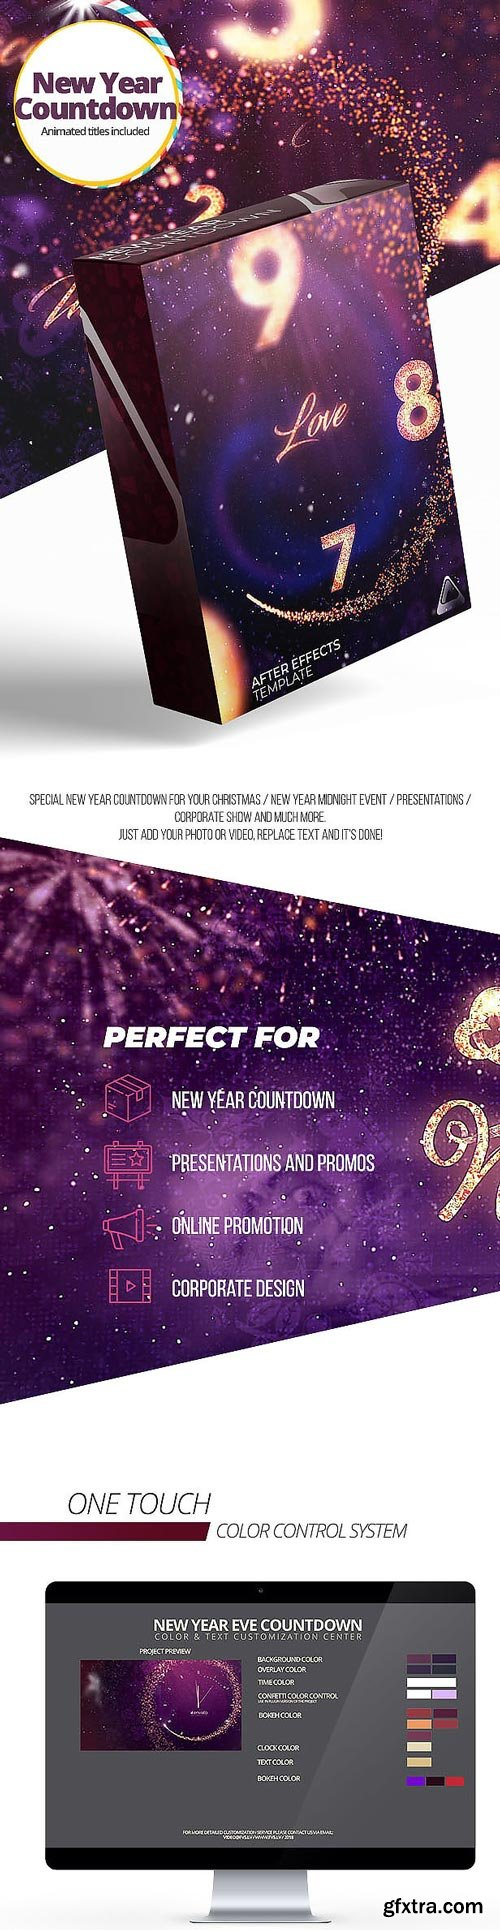 Videohive - Special New Year Countdown 2019 - 22944386